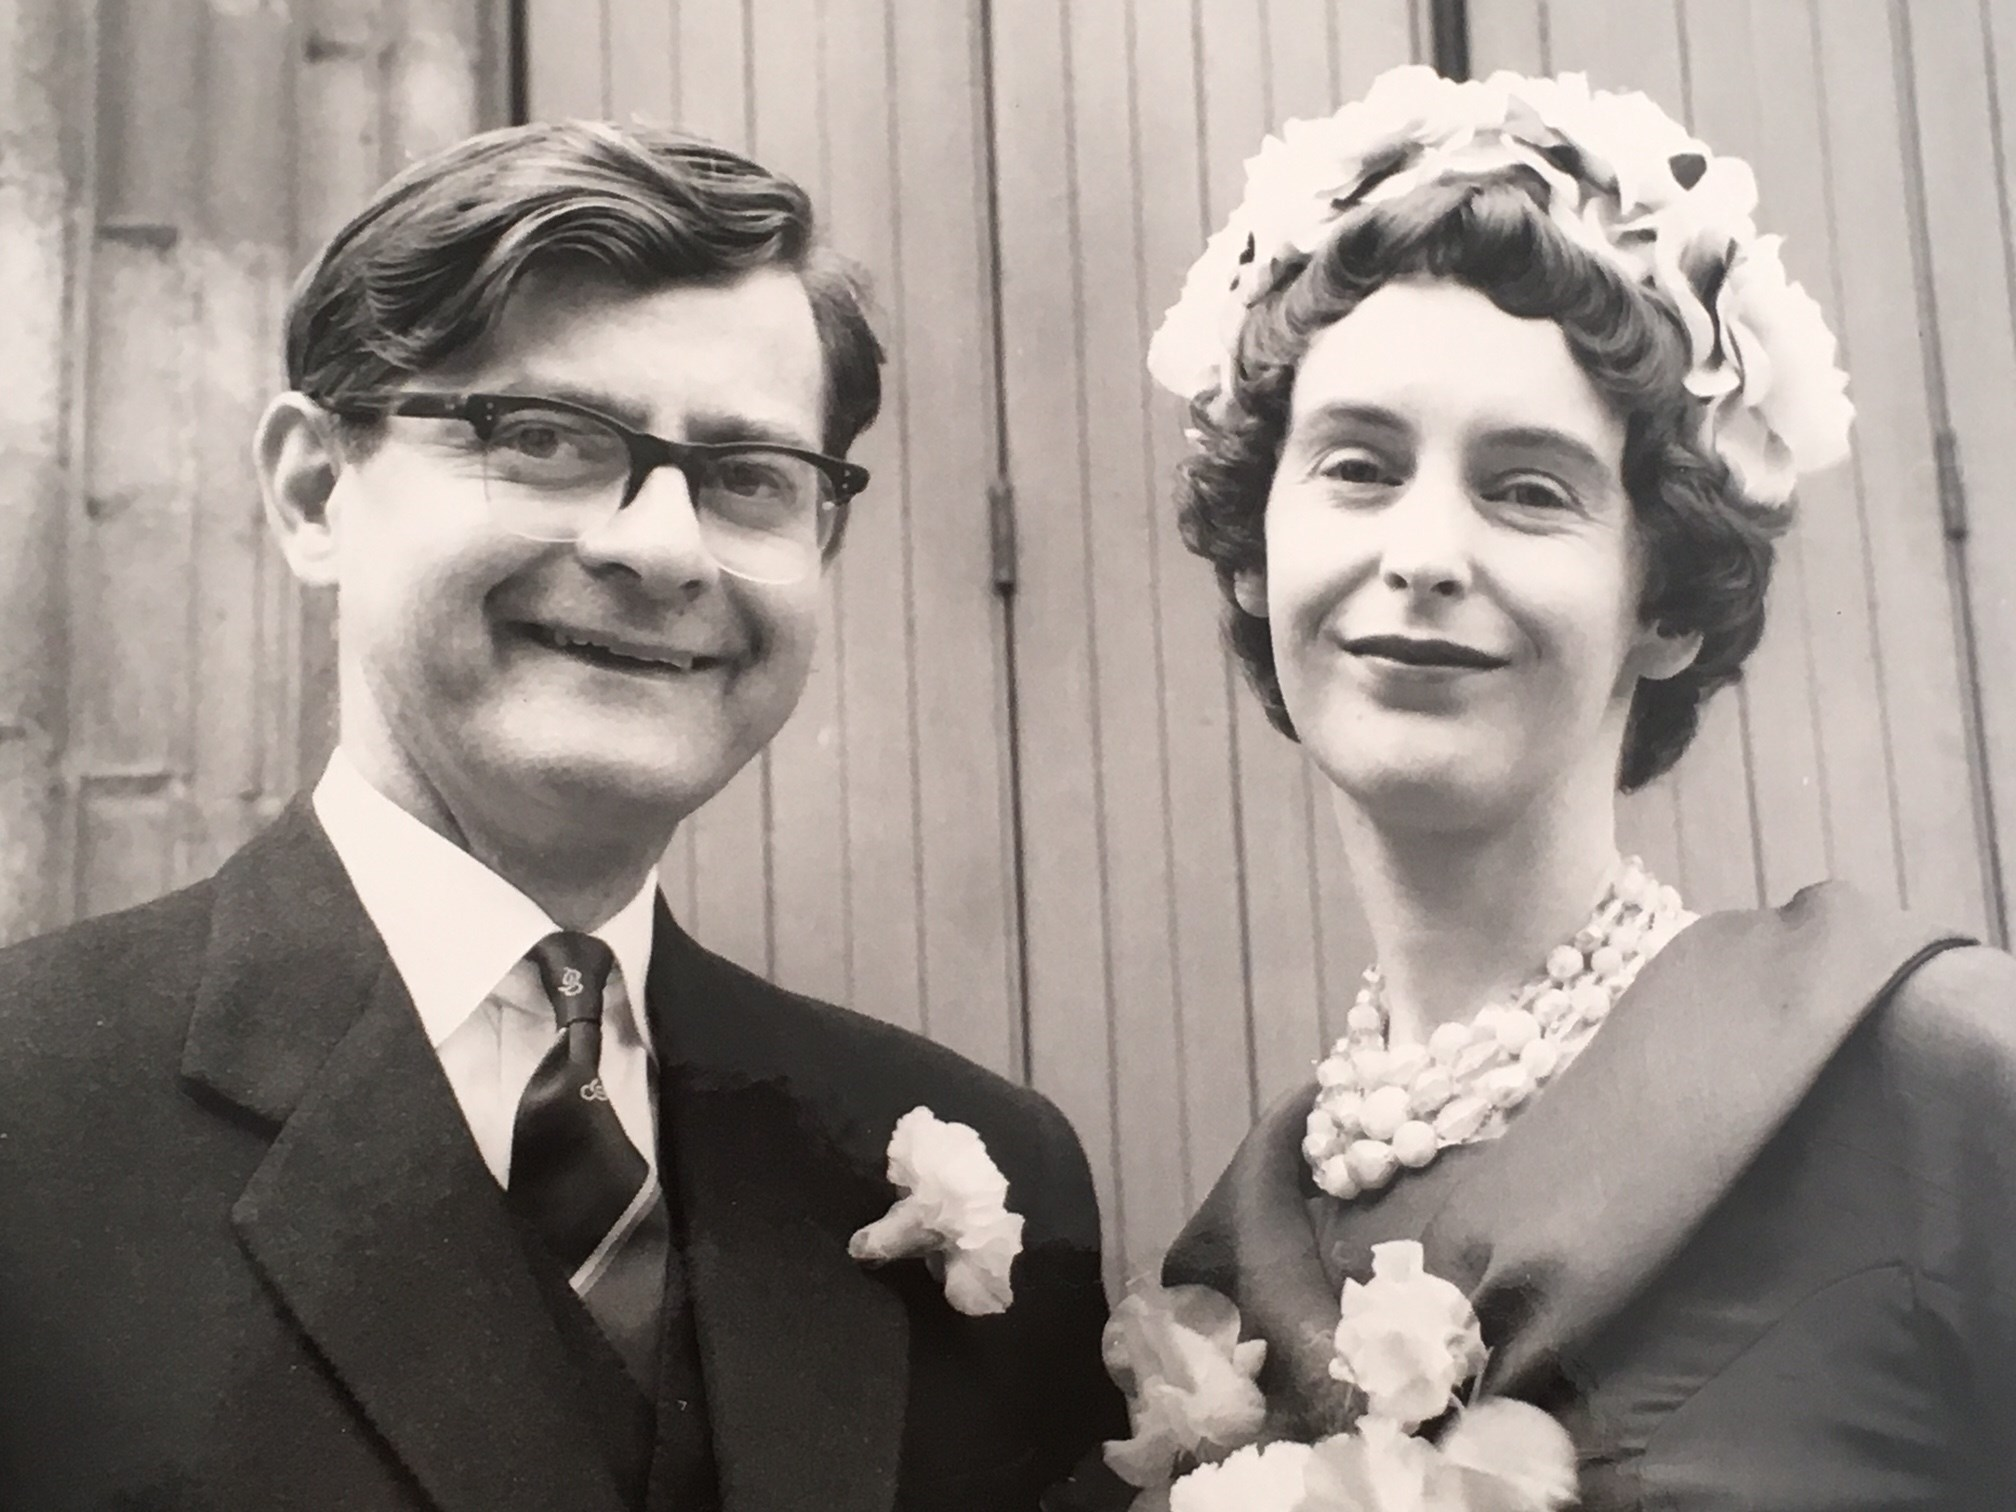 Pat & Len on their wedding day, at St Mary's Magdalen RC Church, Seaham, Co Durham, August 17th 1961